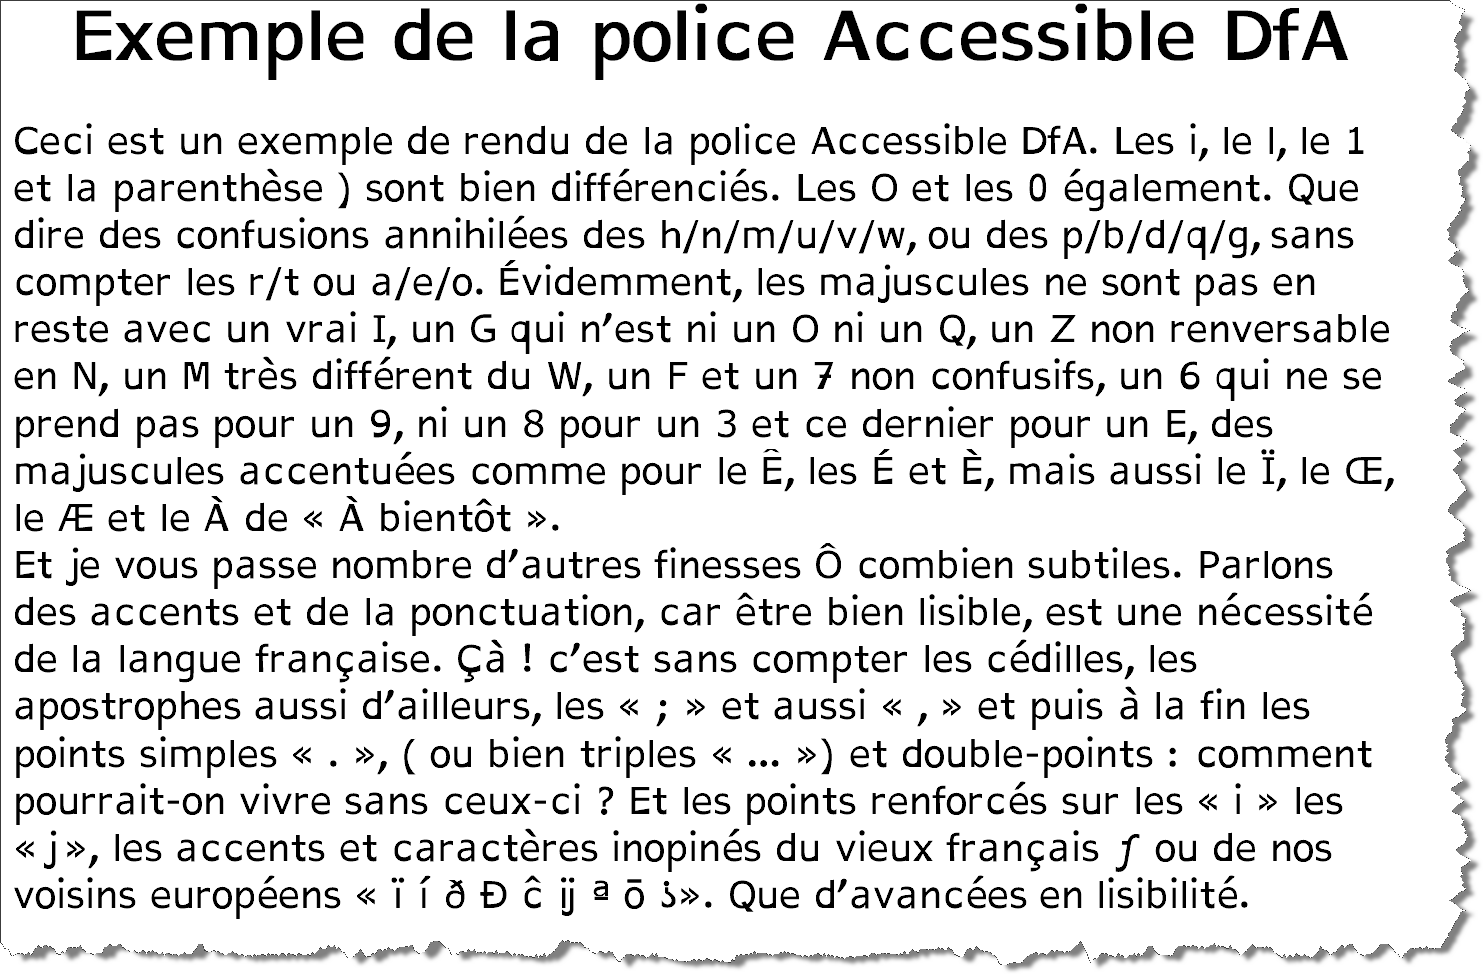 visual example of the AccessibleDfA font